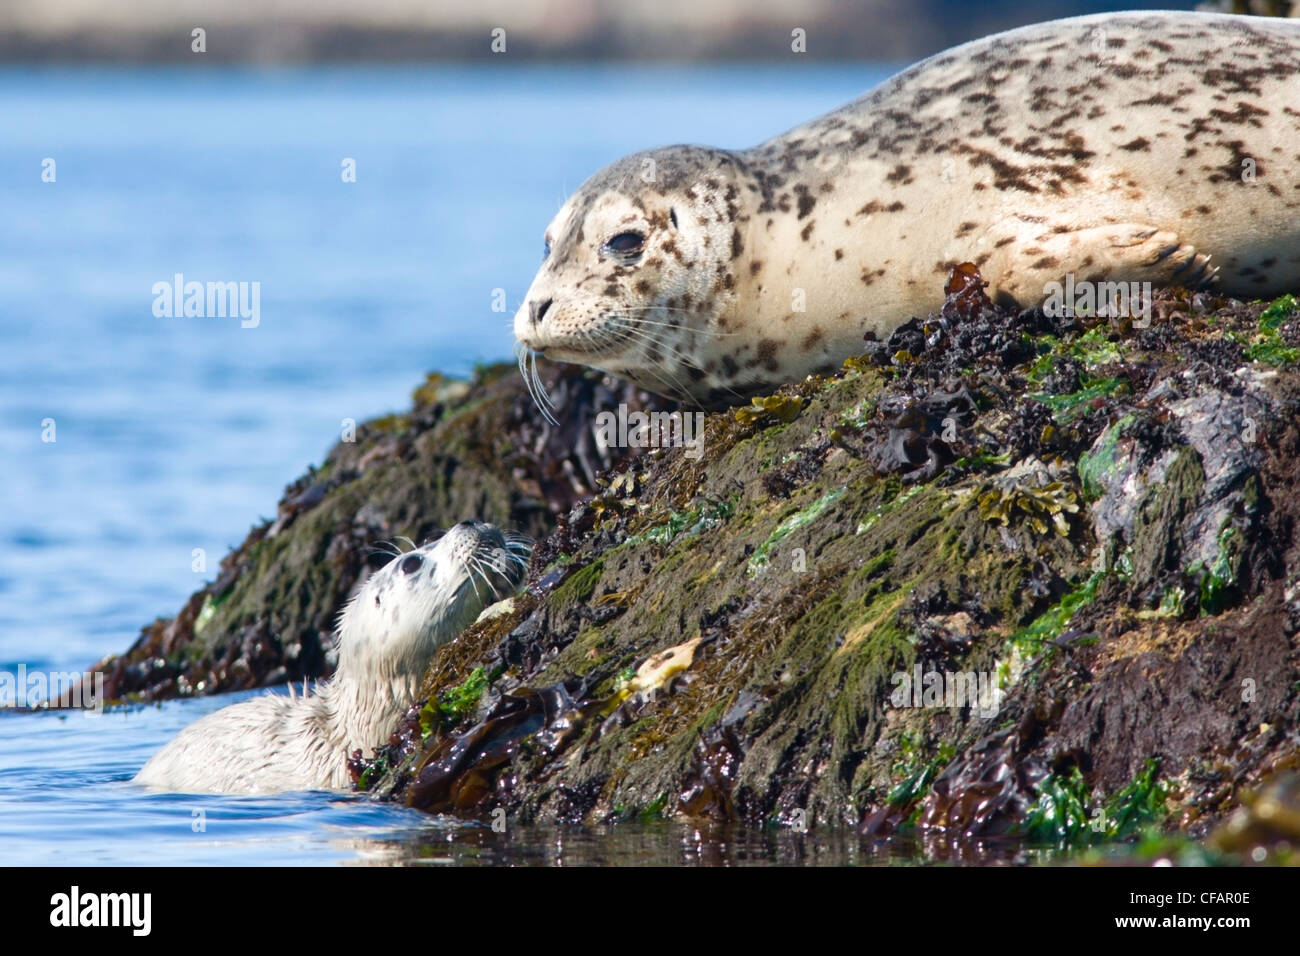 Fur seals (Callorhinus ursinus) adult and pup basking on rocks near Victoria, Vancouver Island, British Columbia, - Stock Image